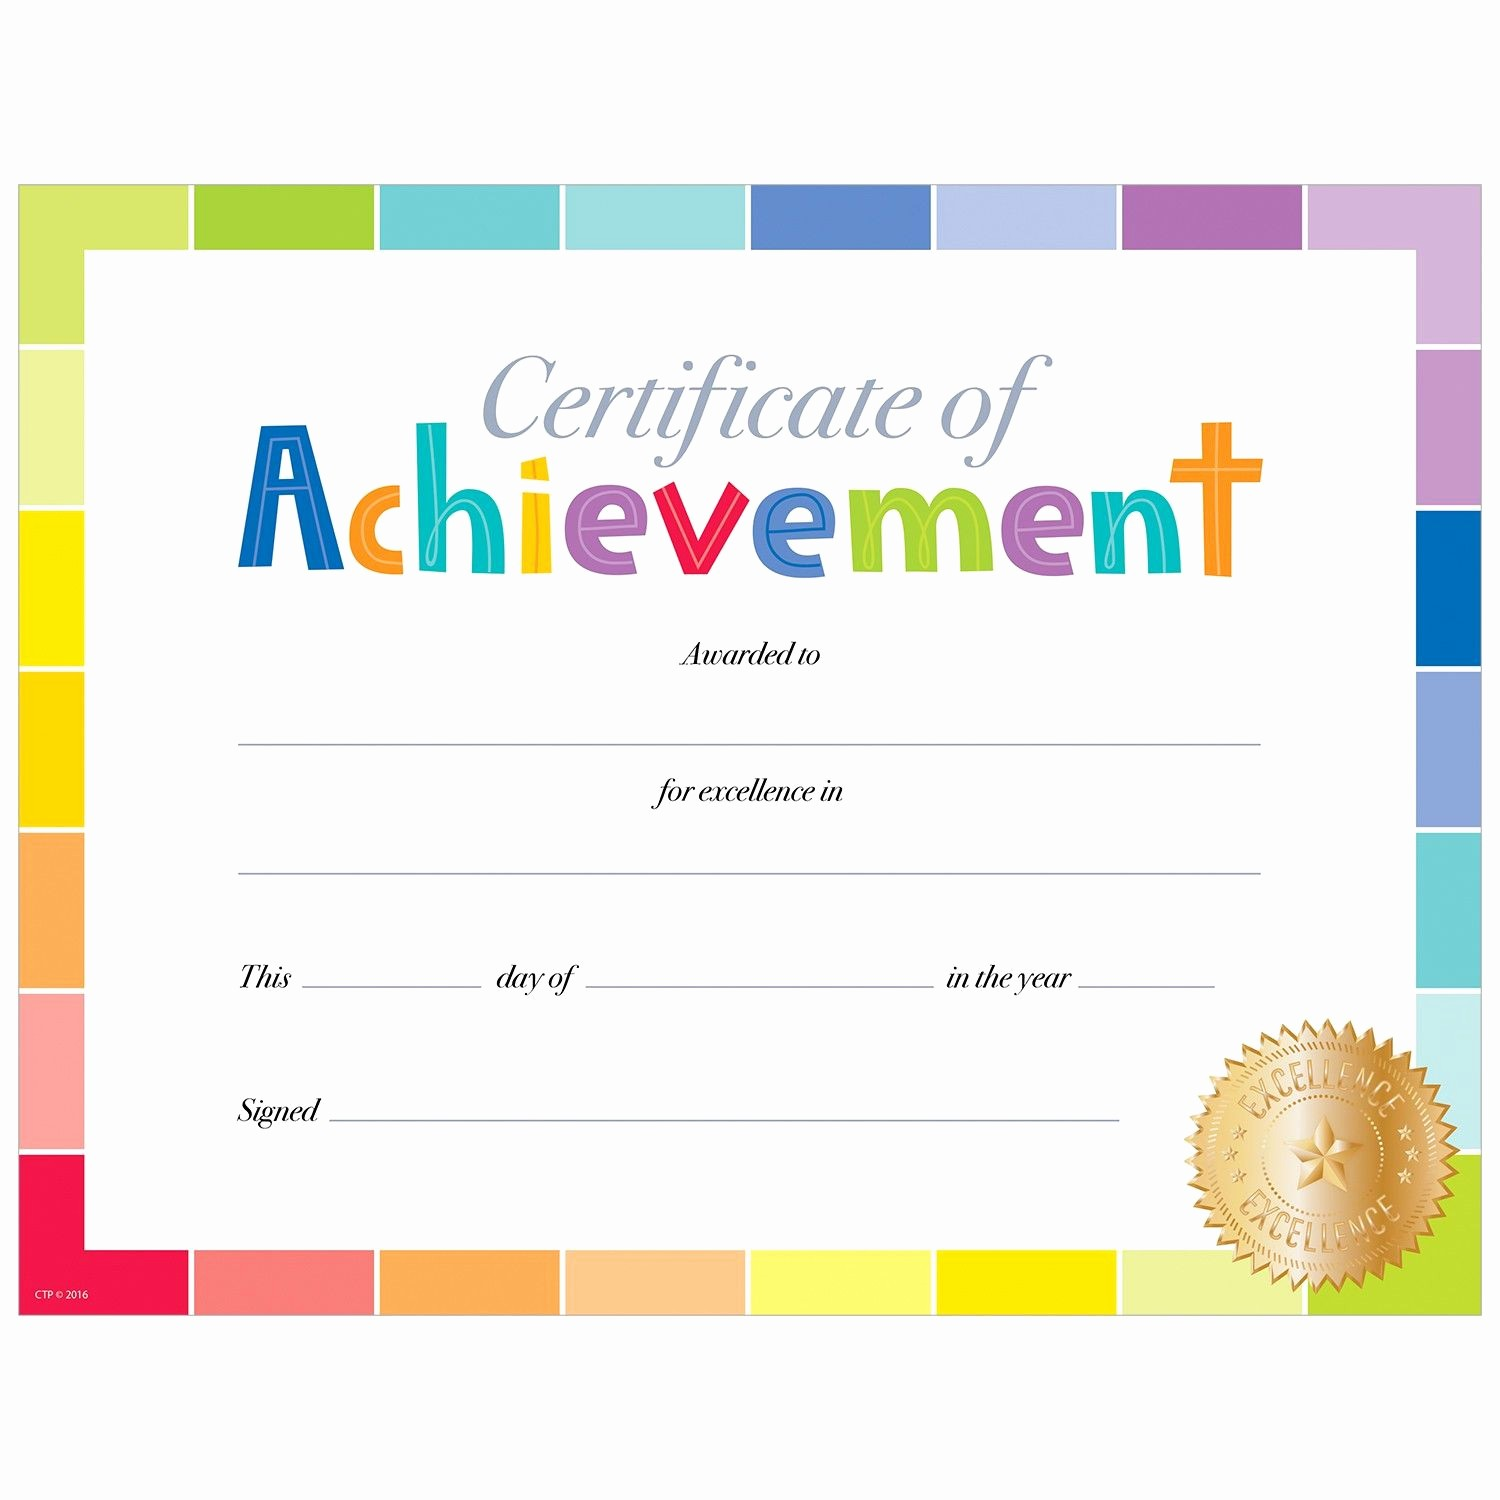 Certificate Of Excellence for Students Luxury Award Certificates Kids Art Google Search